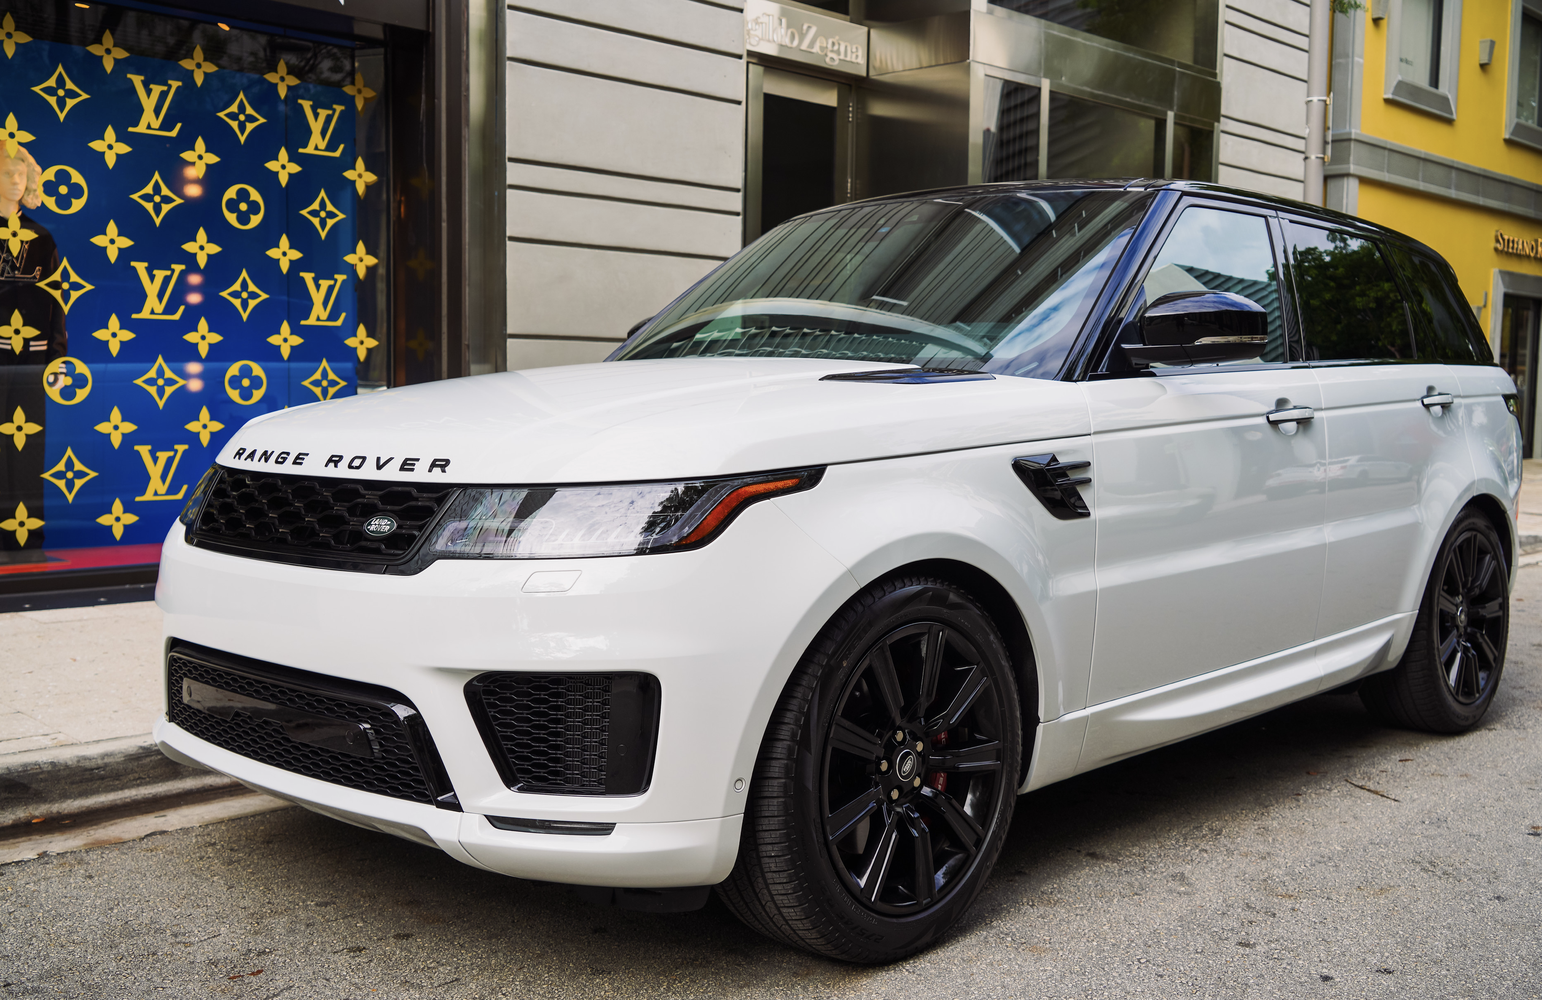 Image #0 of our  Range Rover Sport 22 White    In Miami Fort Lauderdale Palm Beach South Florida